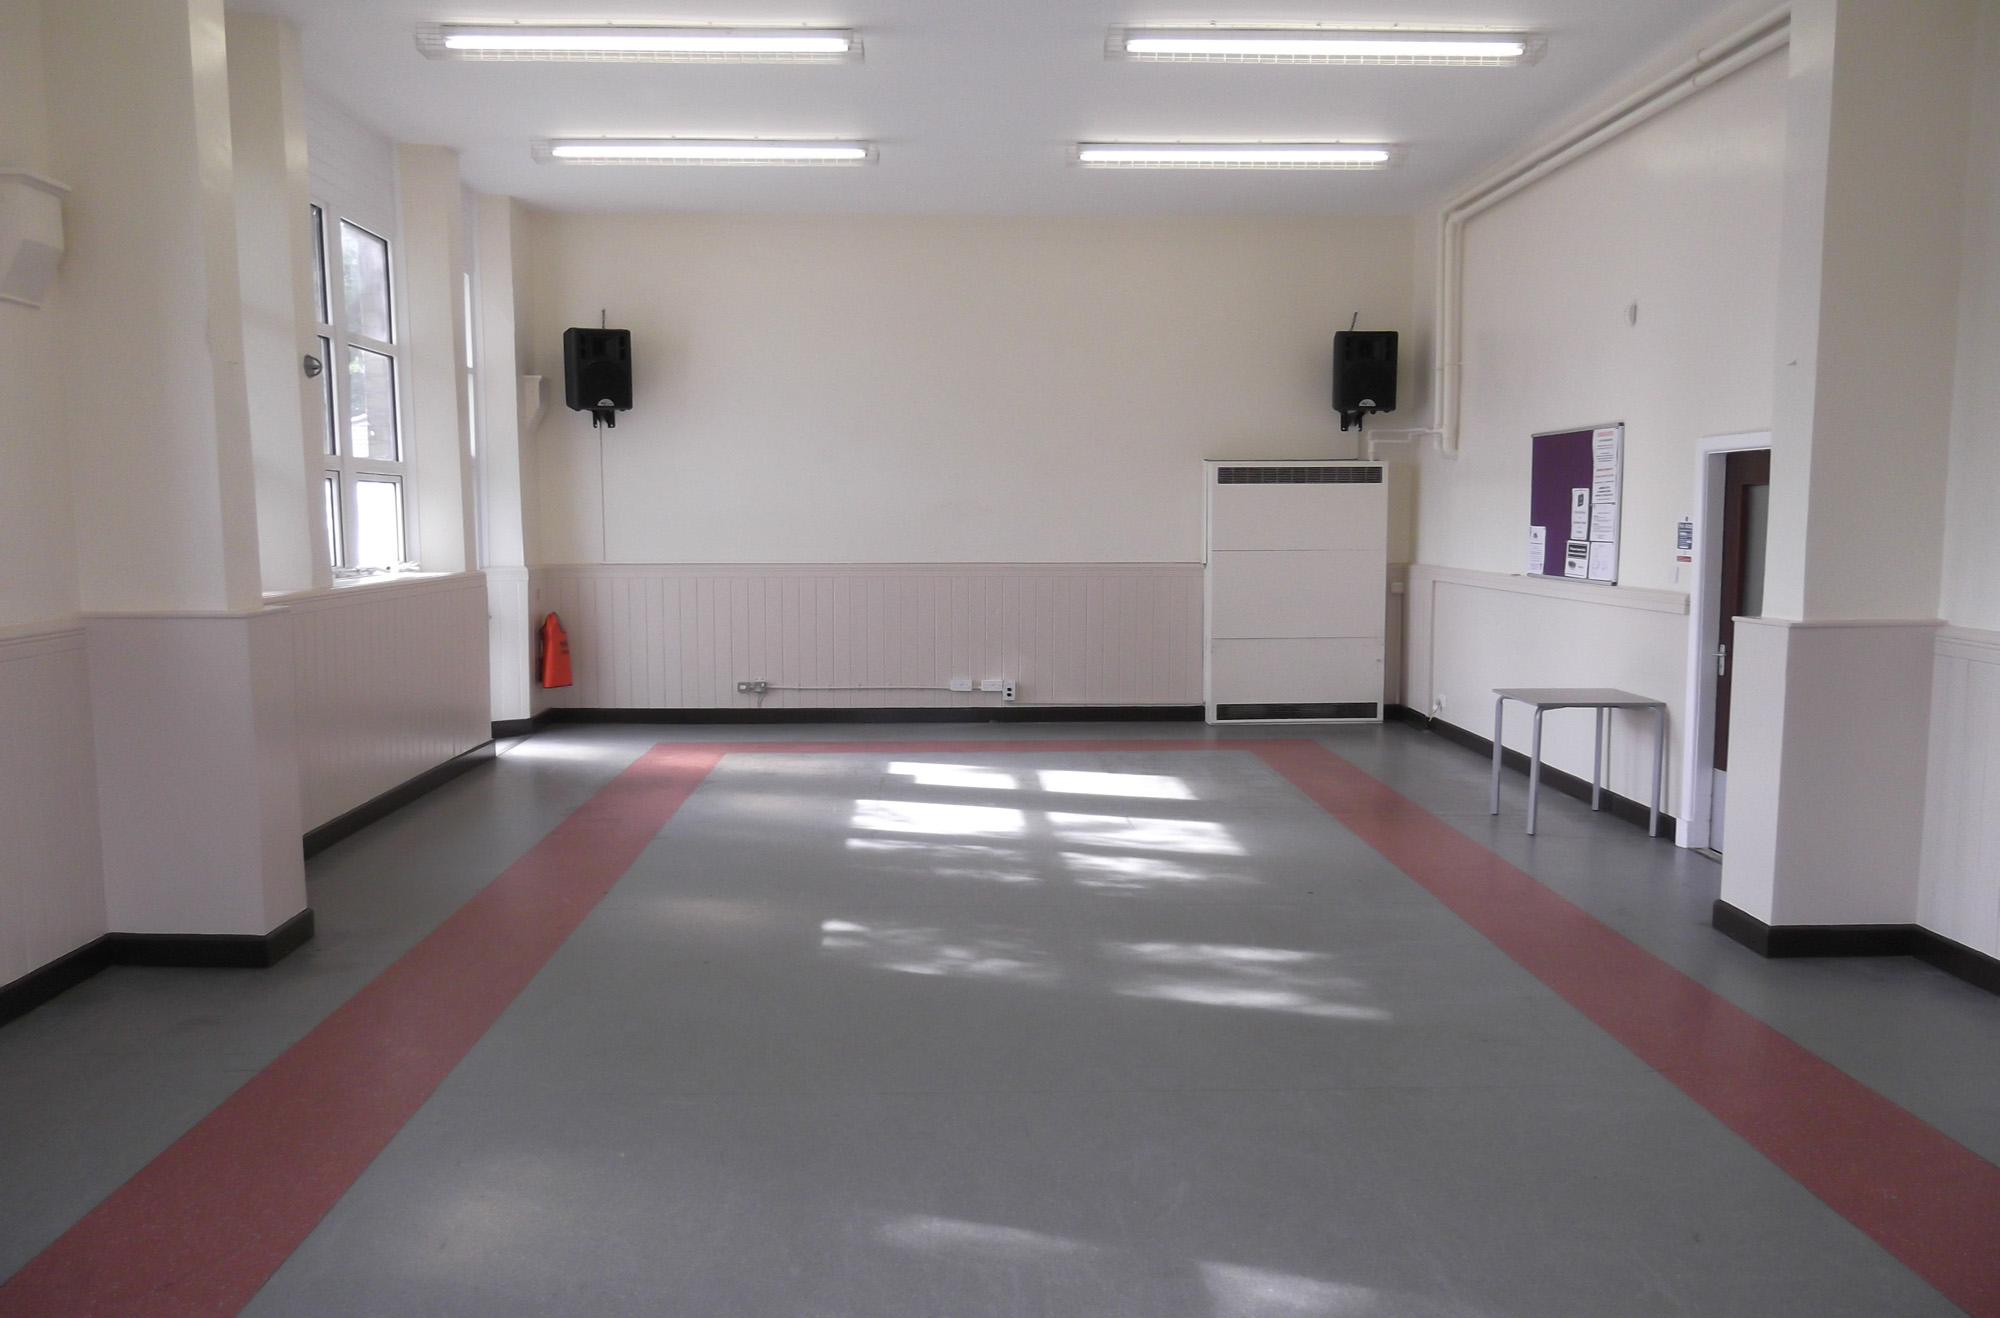 Gannow Community Centre Main Hall